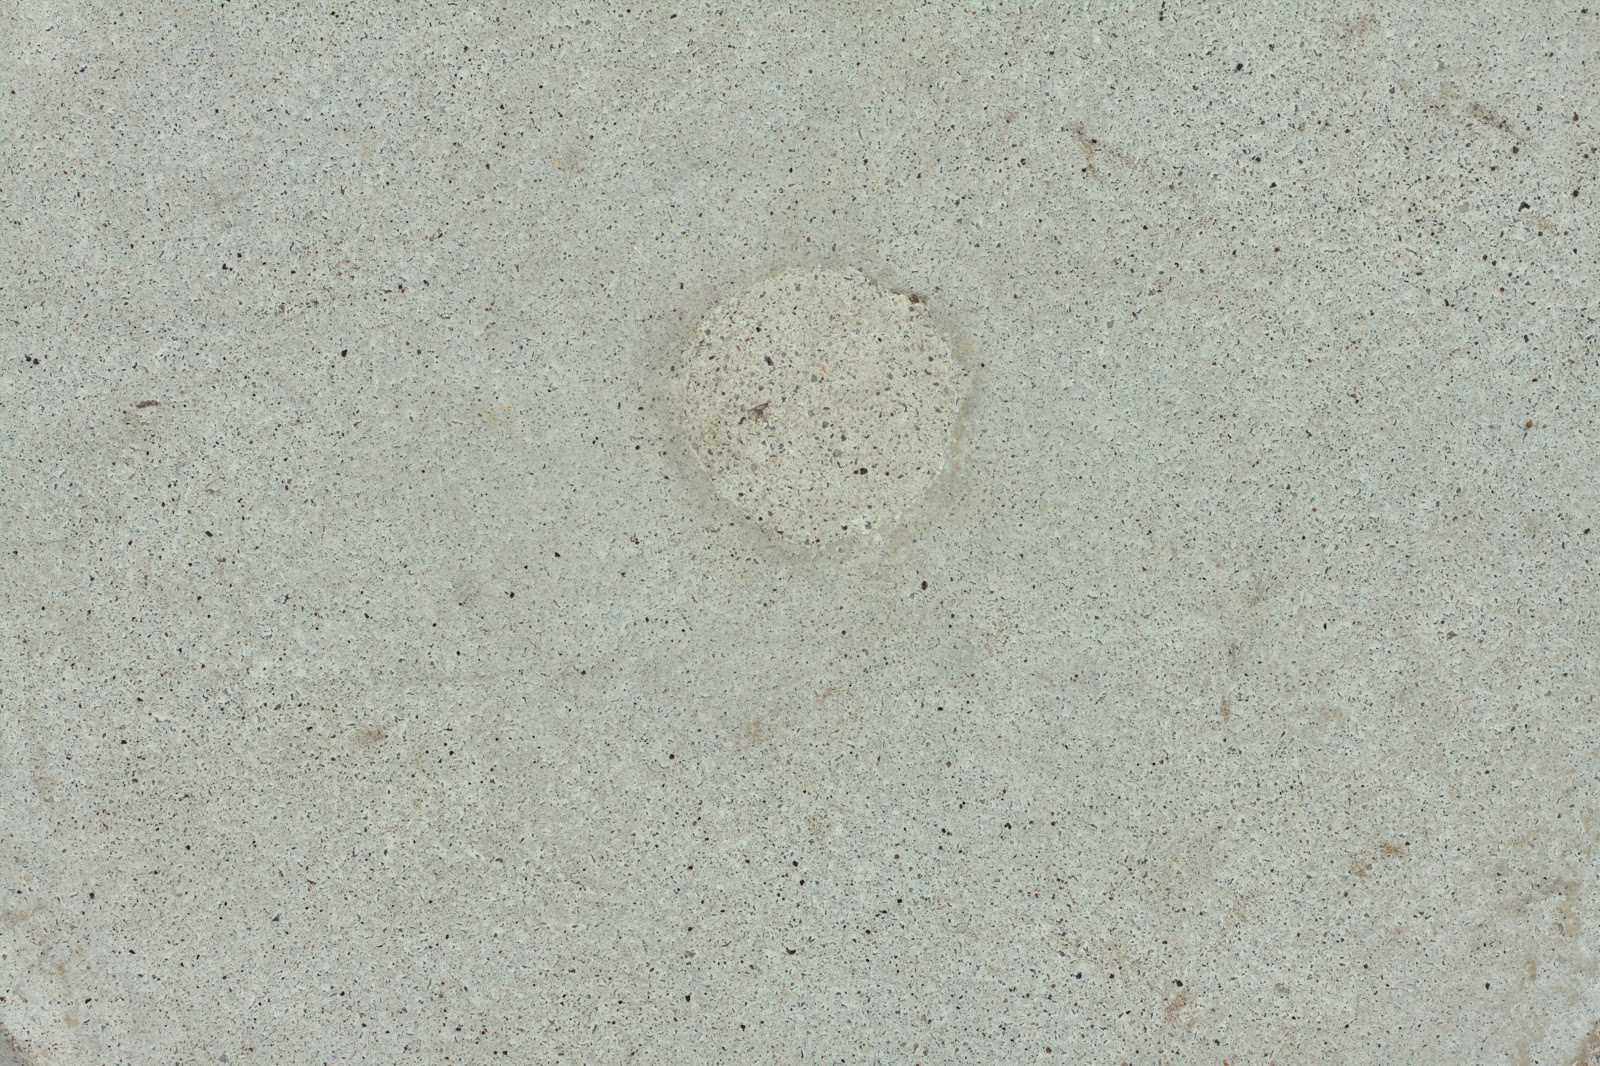 Concrete stained dirty texture 4770x3178